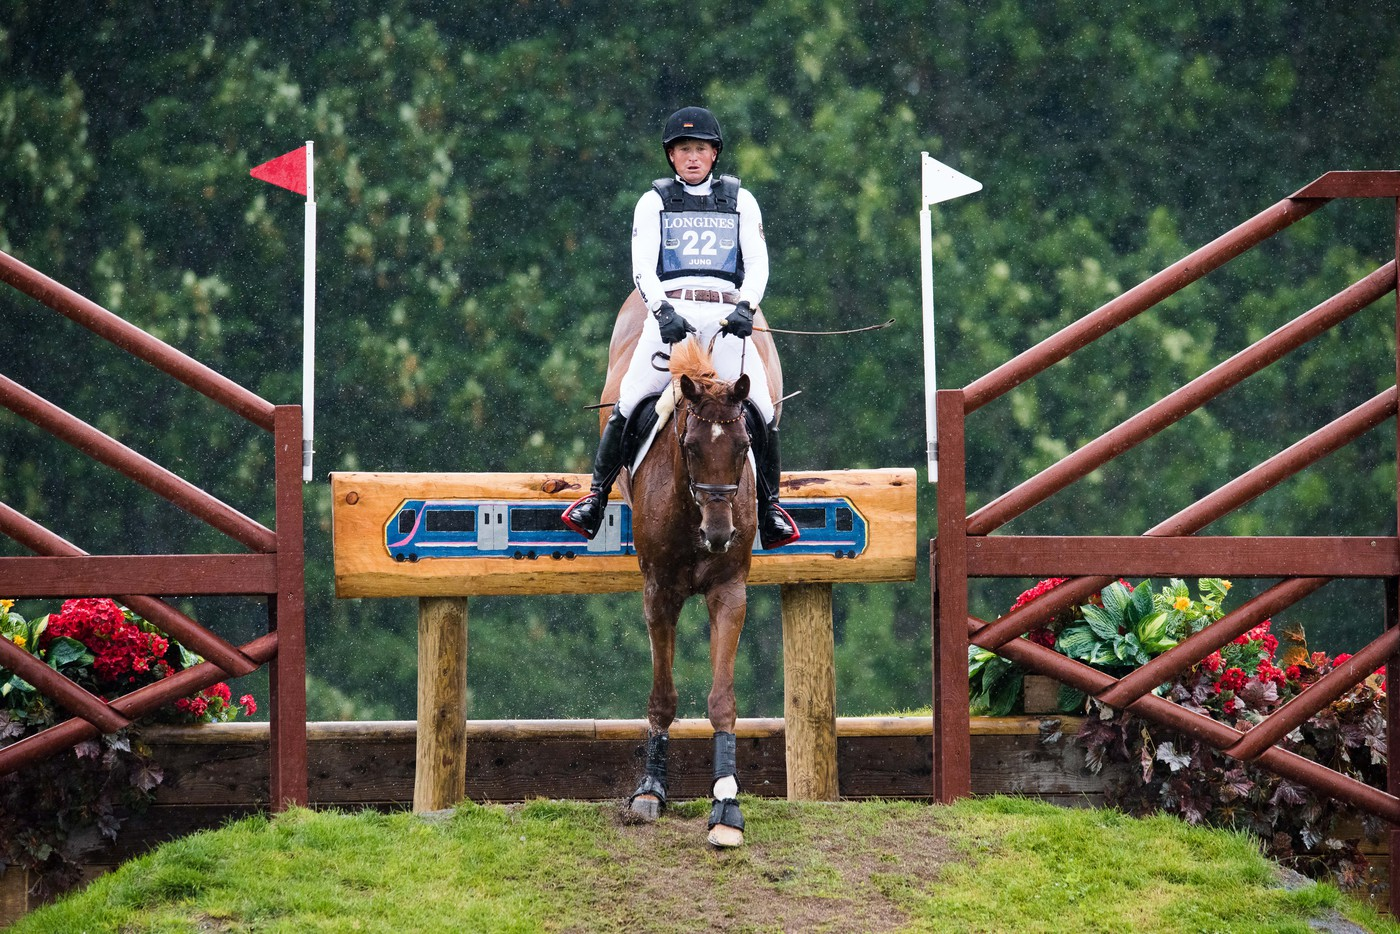 Longines Eventing Event: the Longines FEI European Eventing Championship 2015 (Blair Castle) 3